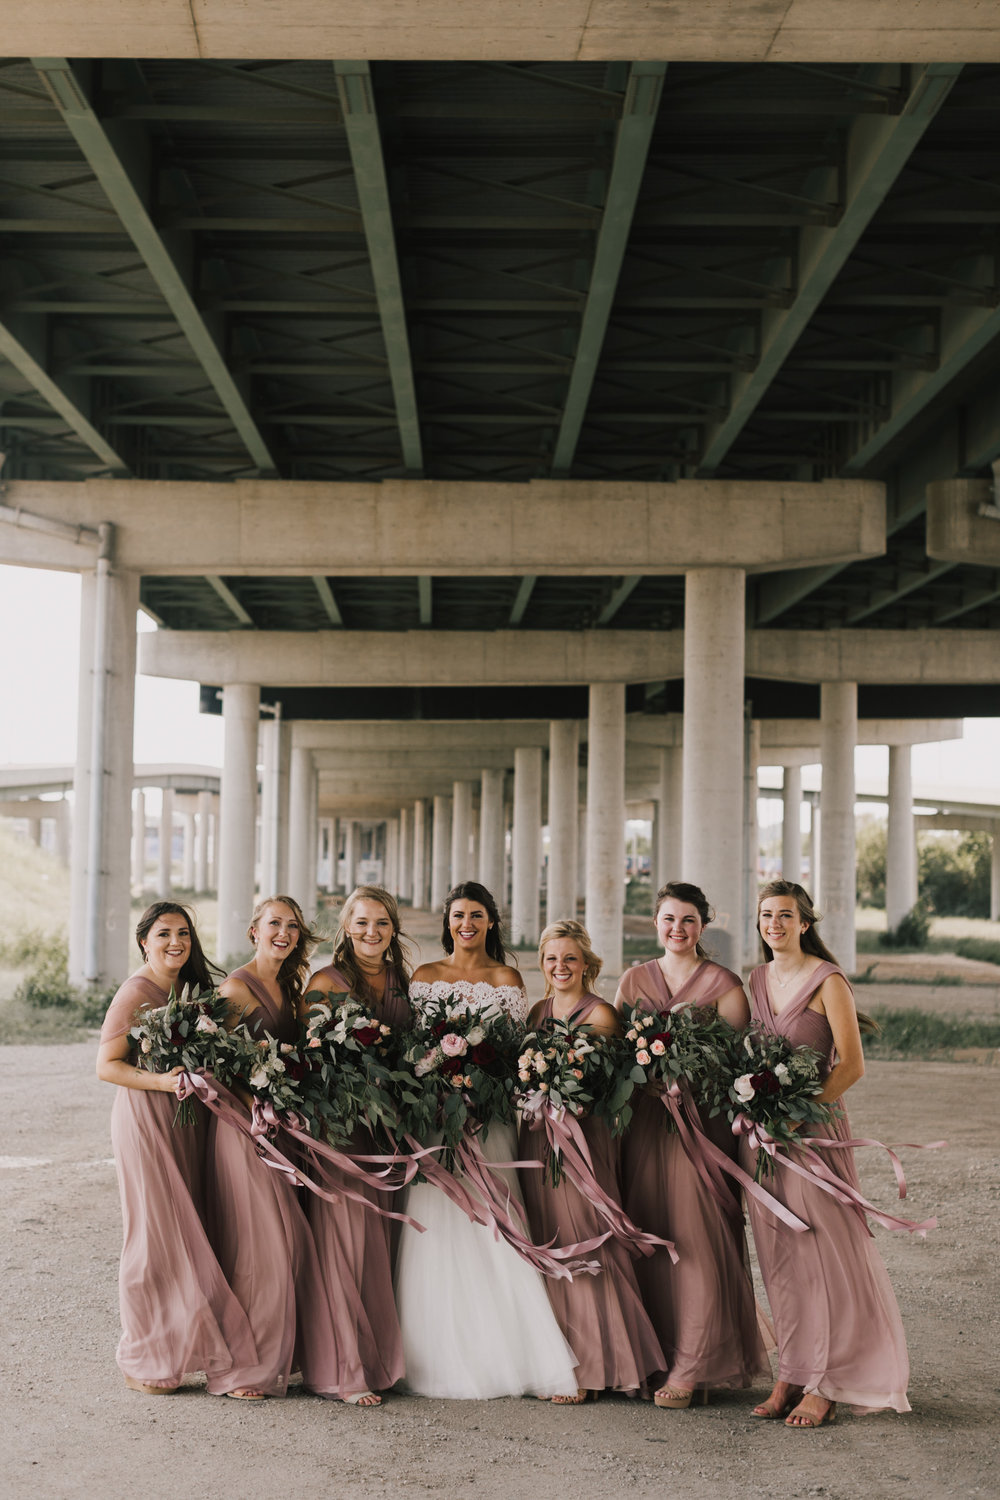 alyssa barletter photography kansas city summer glam boho wedding photographer the abbot crossroads kc-27.jpg